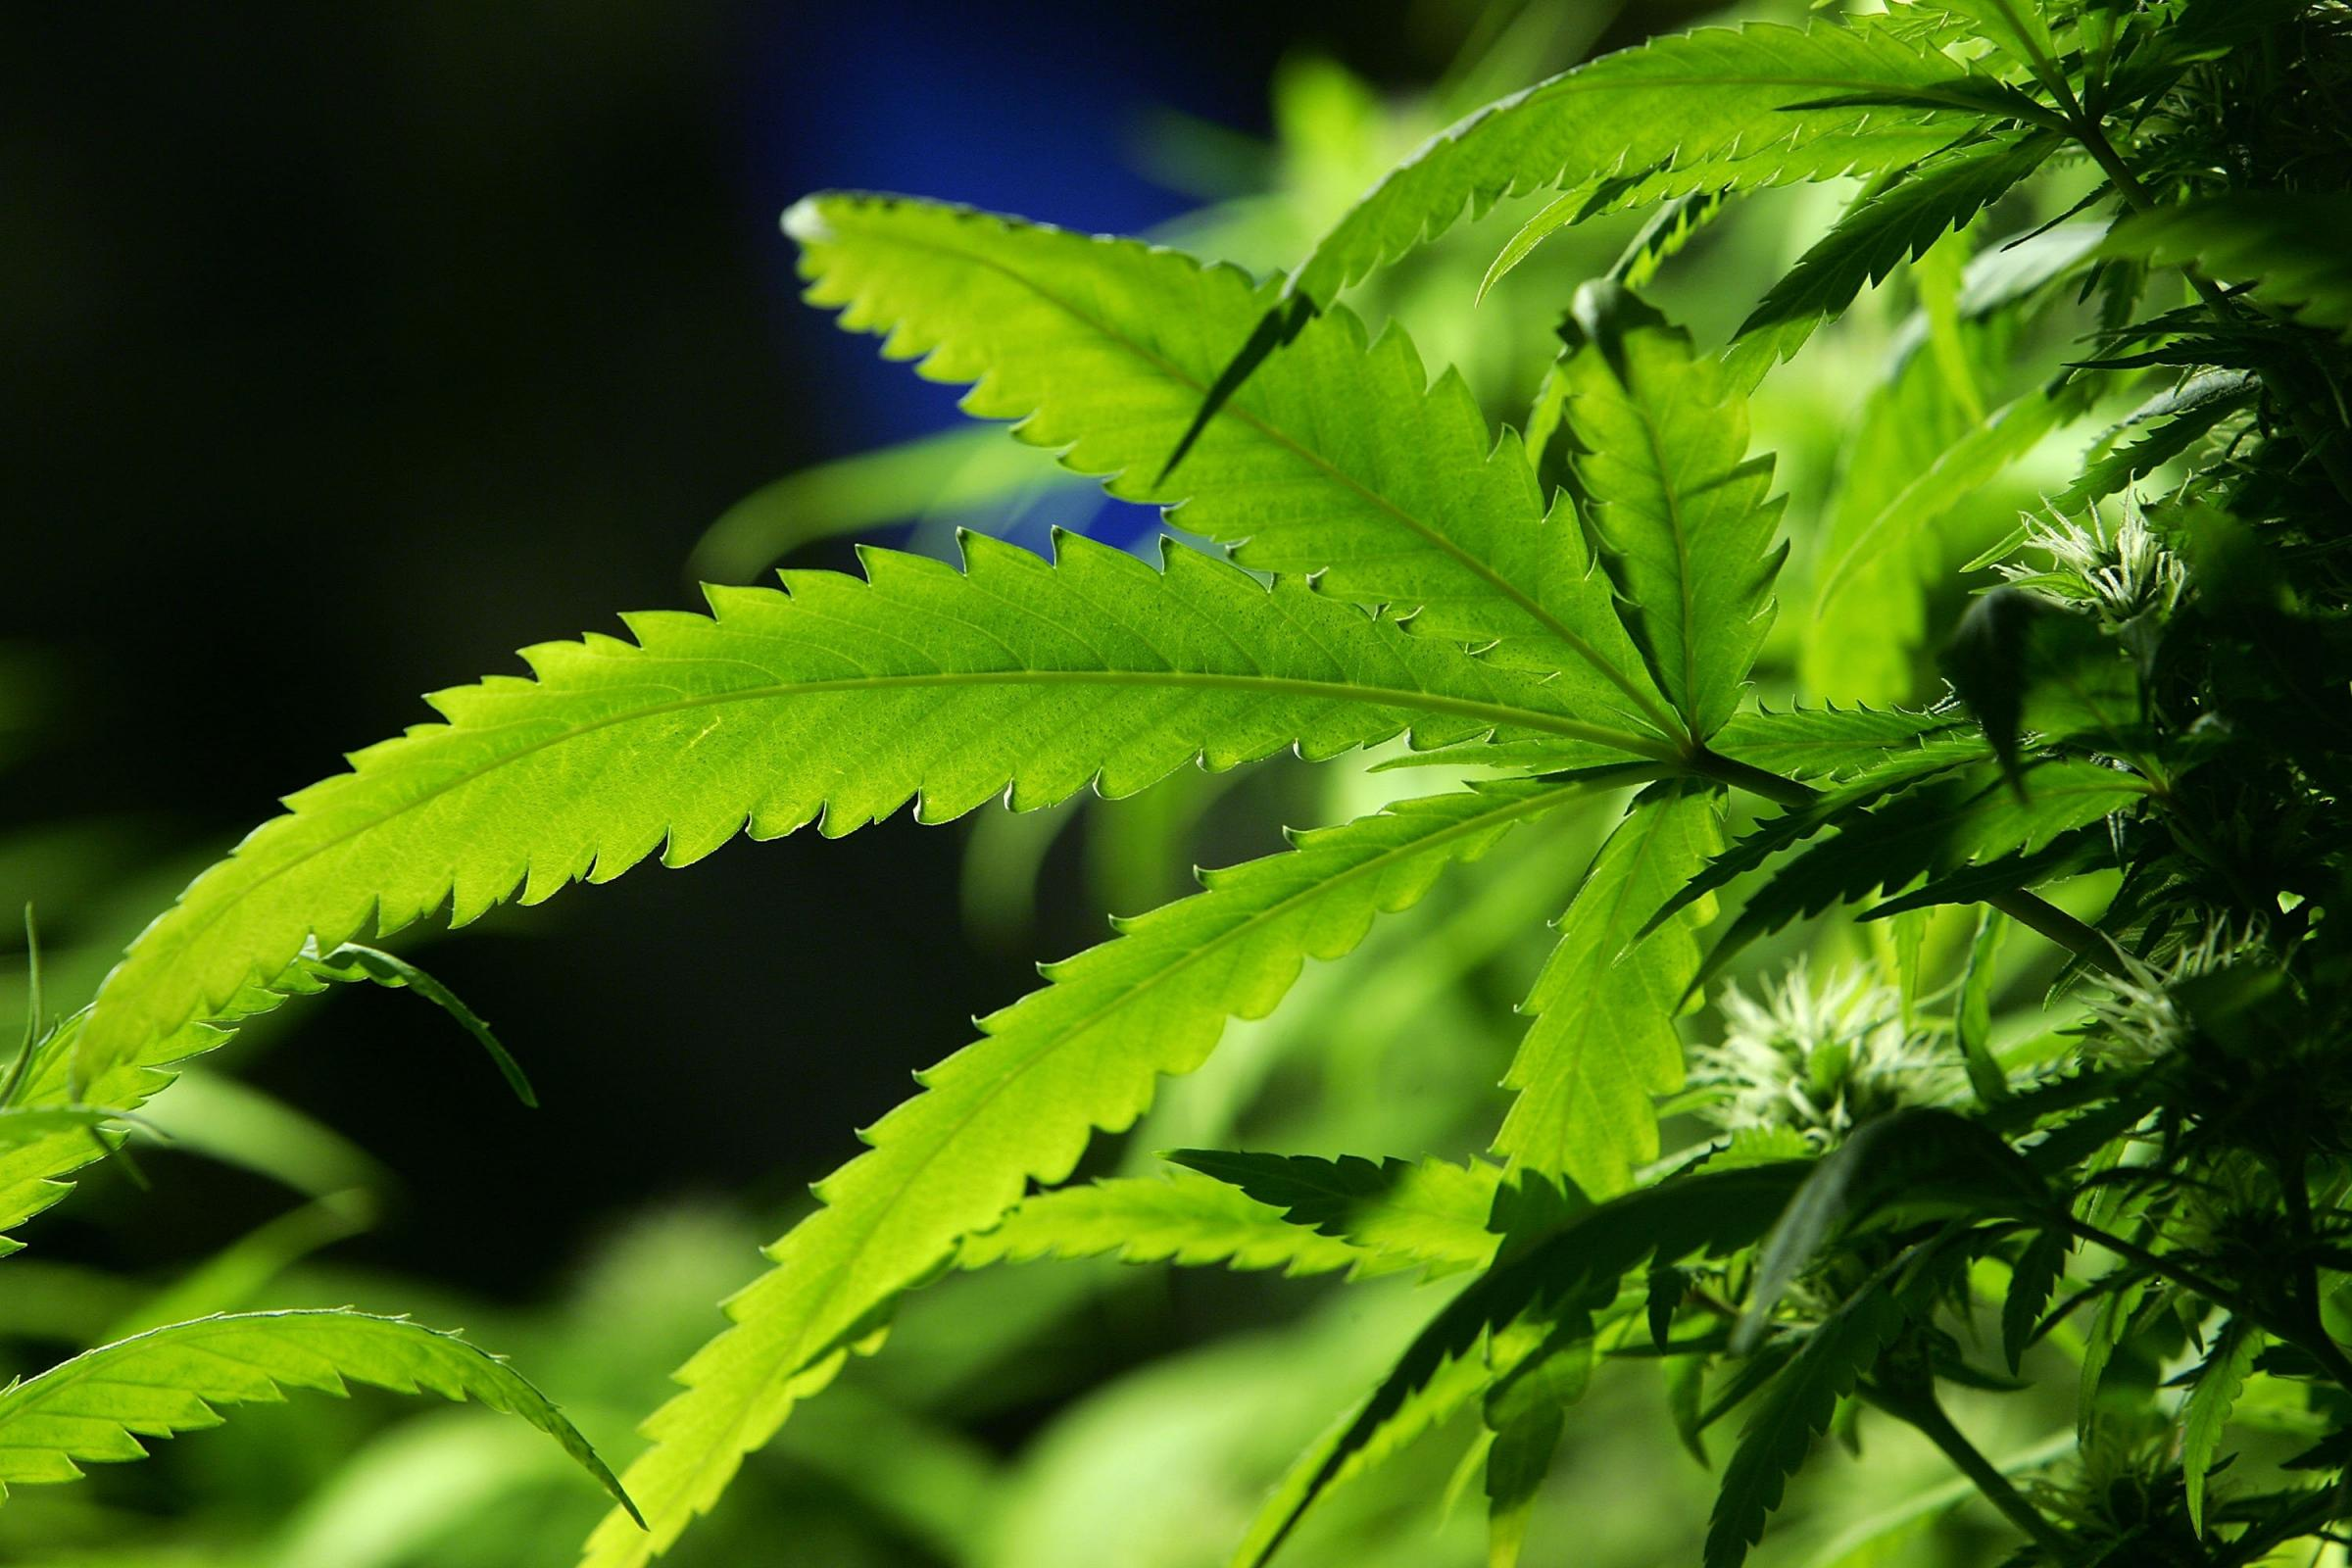 Scotland is set for a multi-million pound boon from the cannabis industry after a worldwide health agency confirmed that the drug provides medicinal relief for a range of ailments.